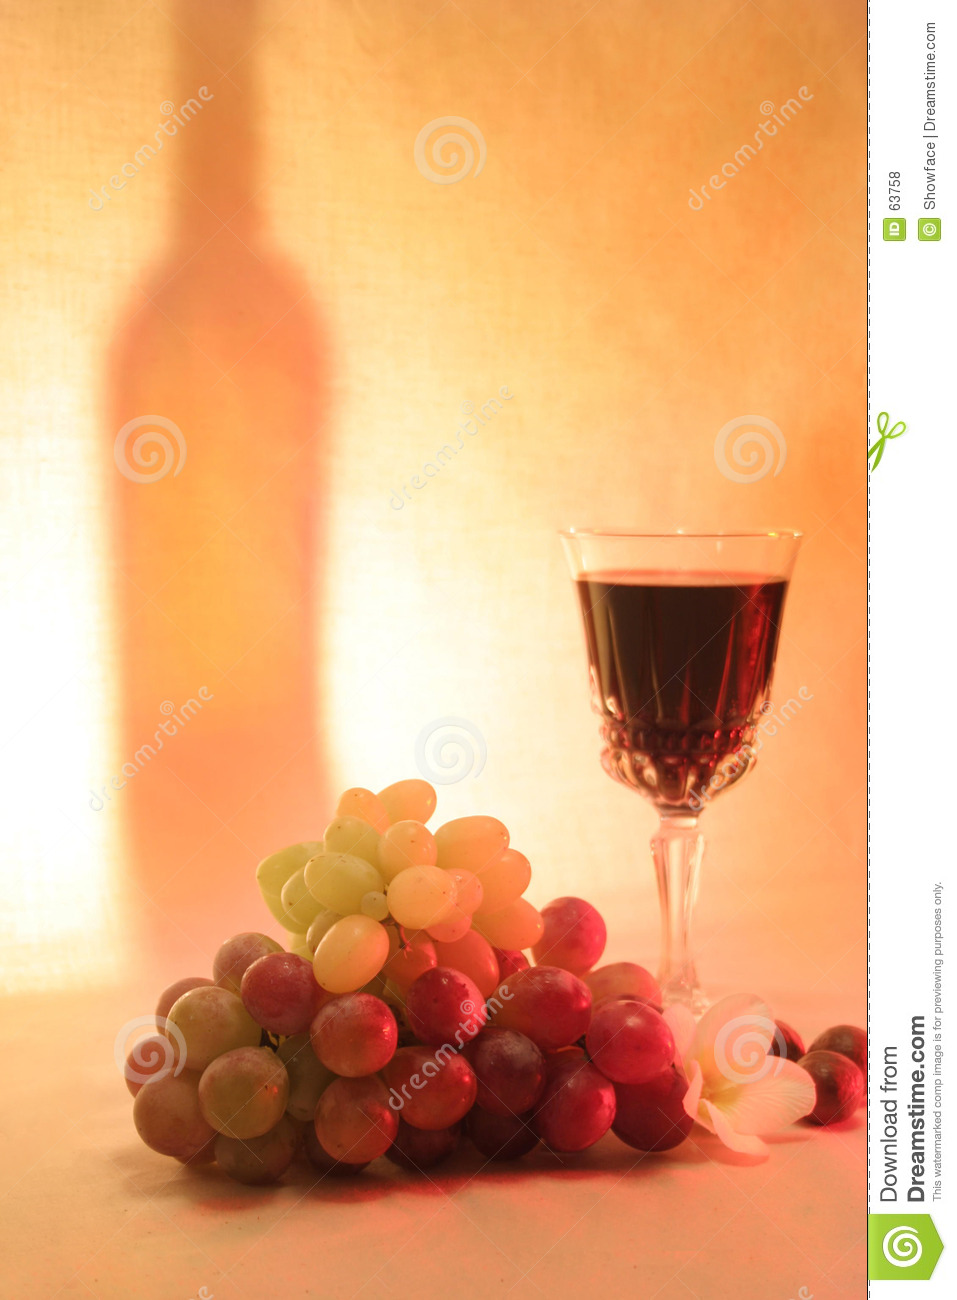 Vin, macadamia de fruits